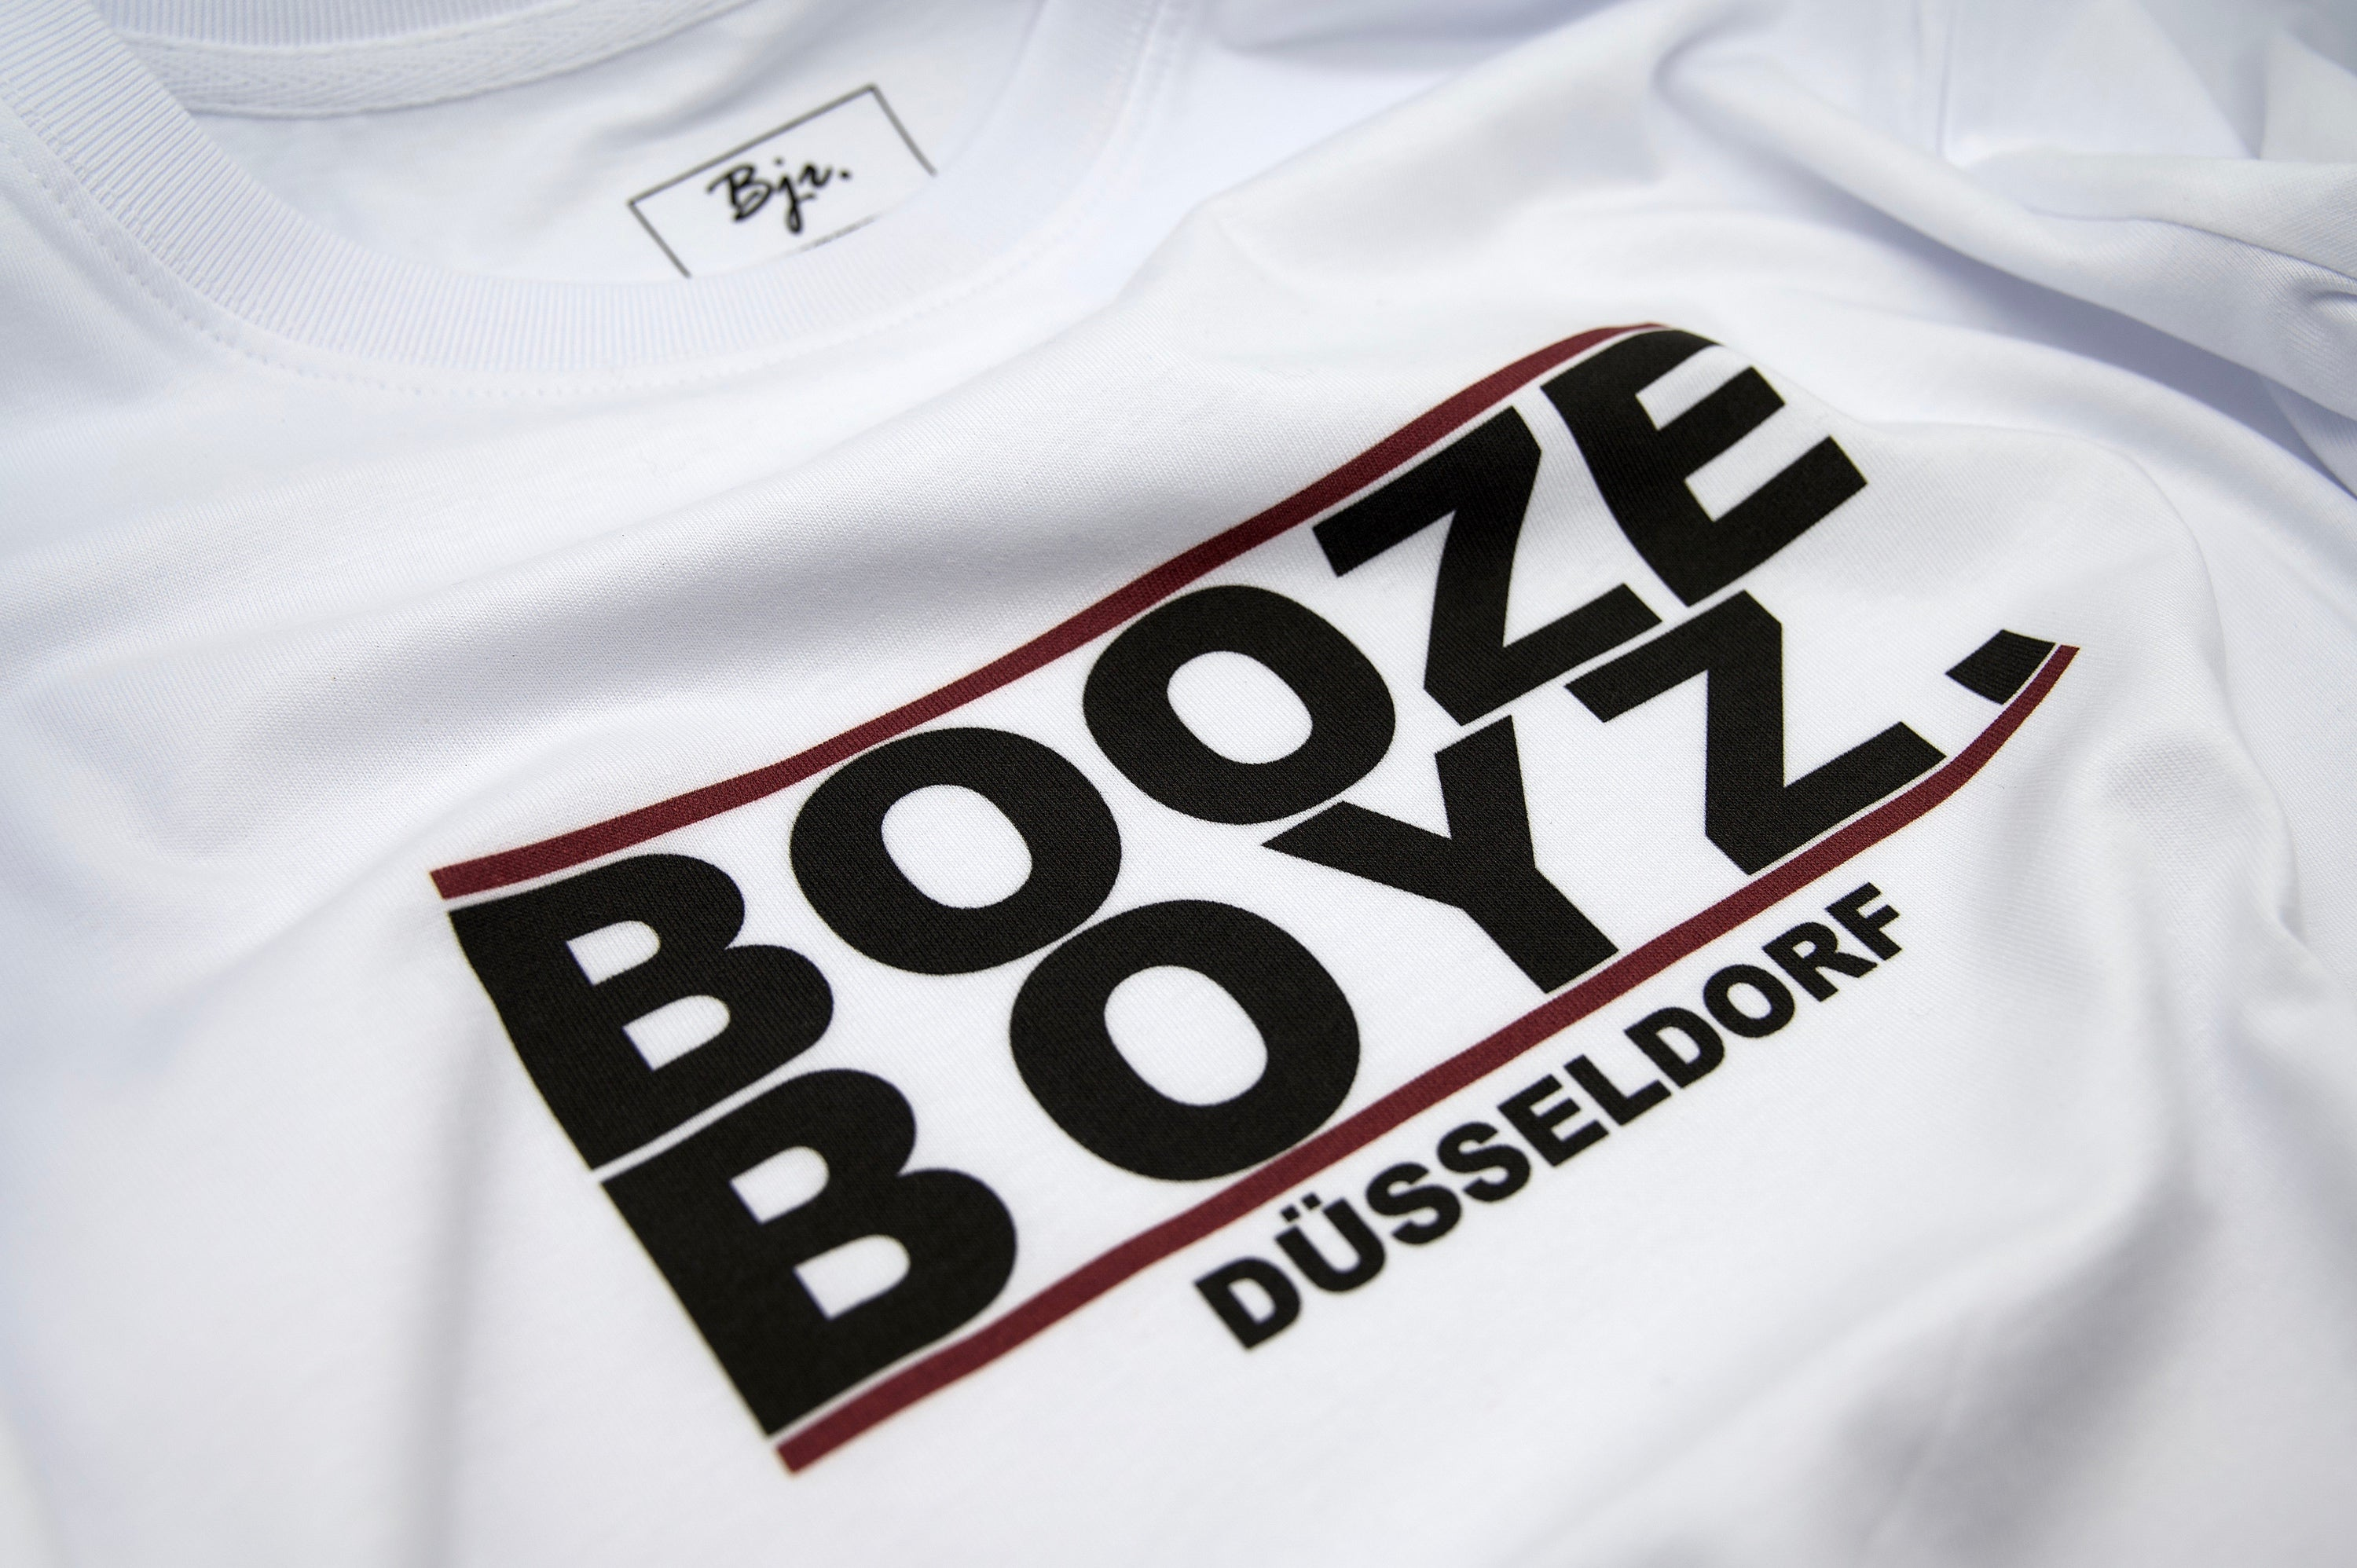 Booze Boyz International Shirt